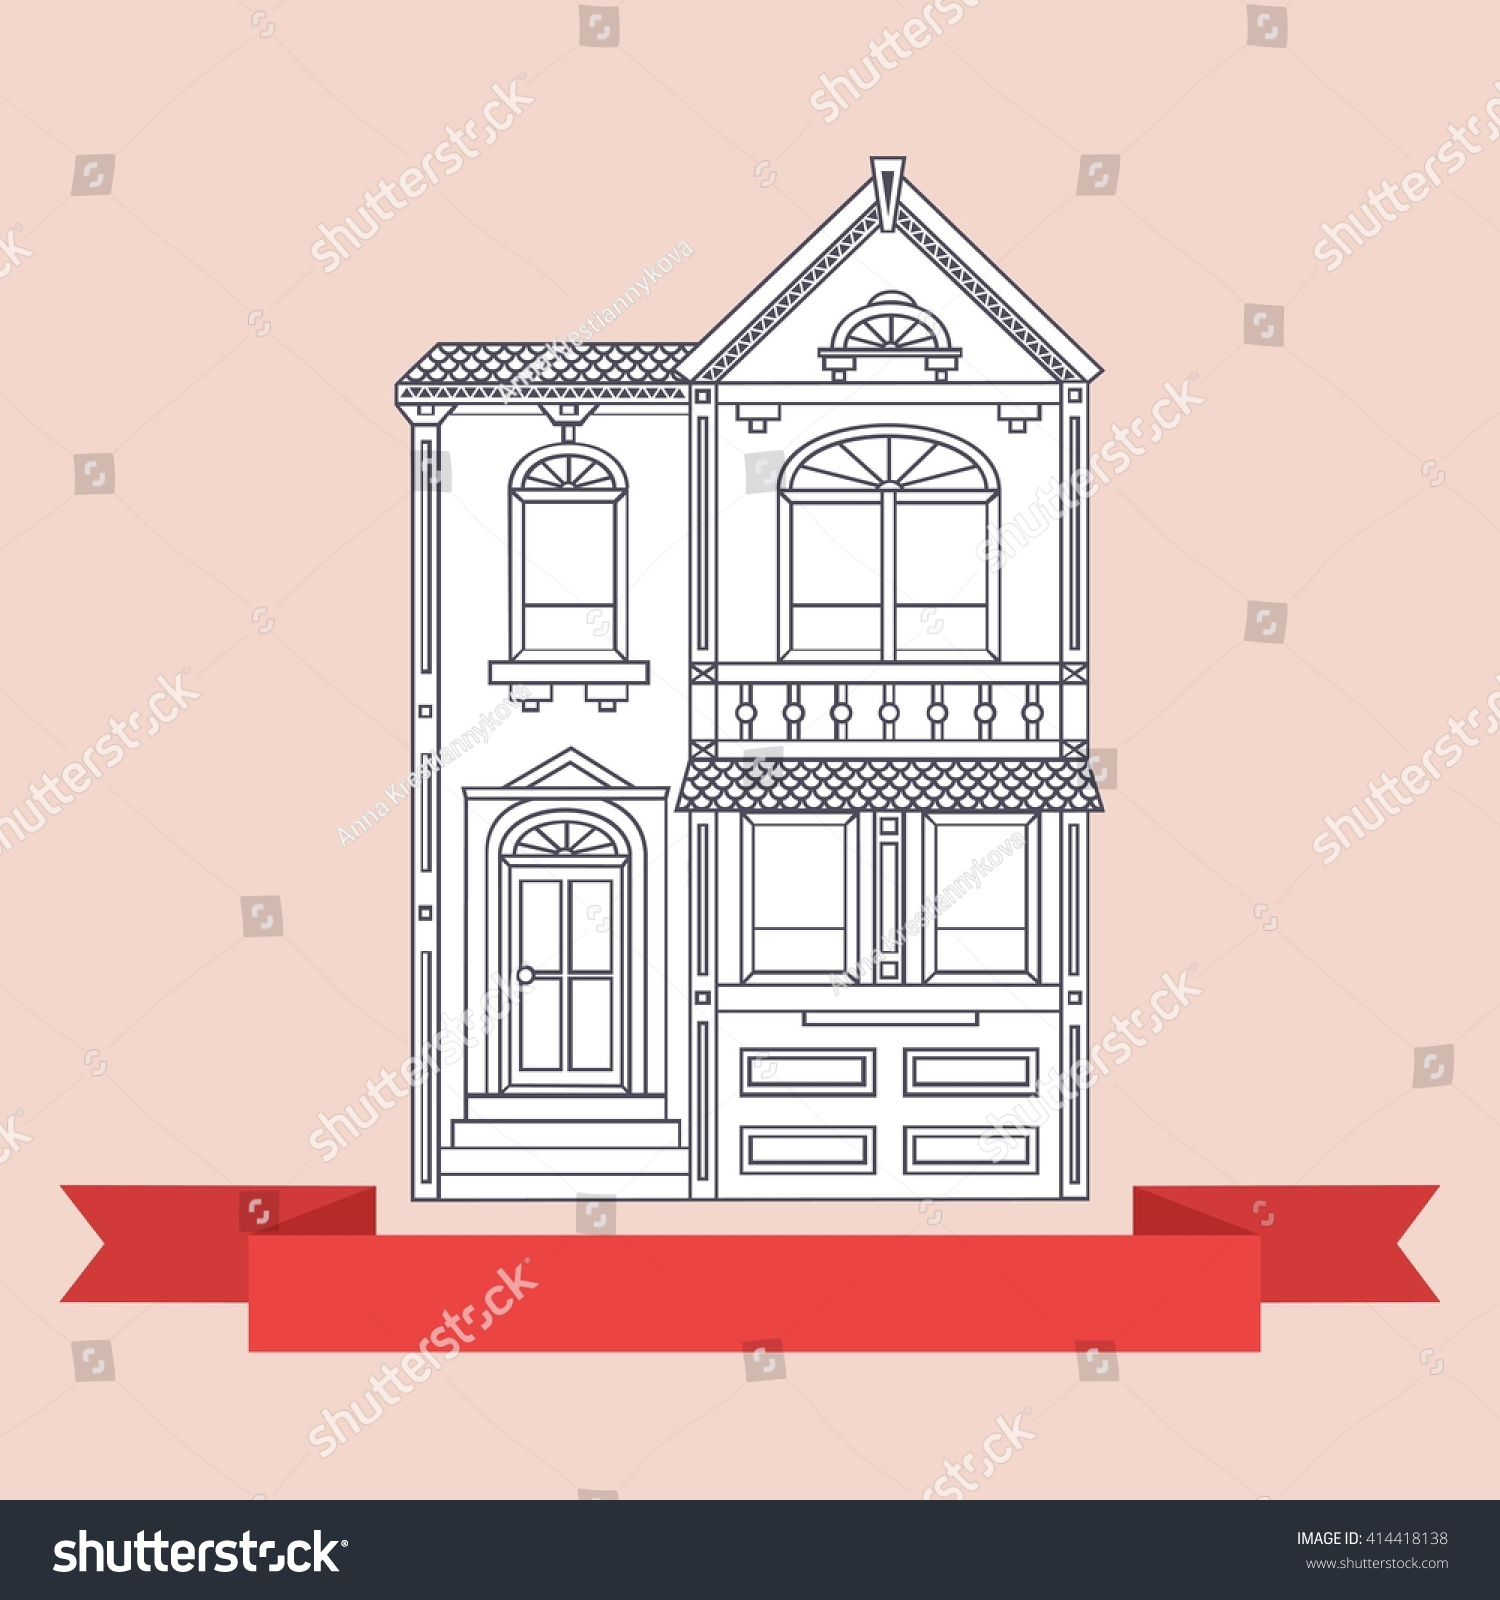 Two Story Victorian Style House Simple Vector Illustration